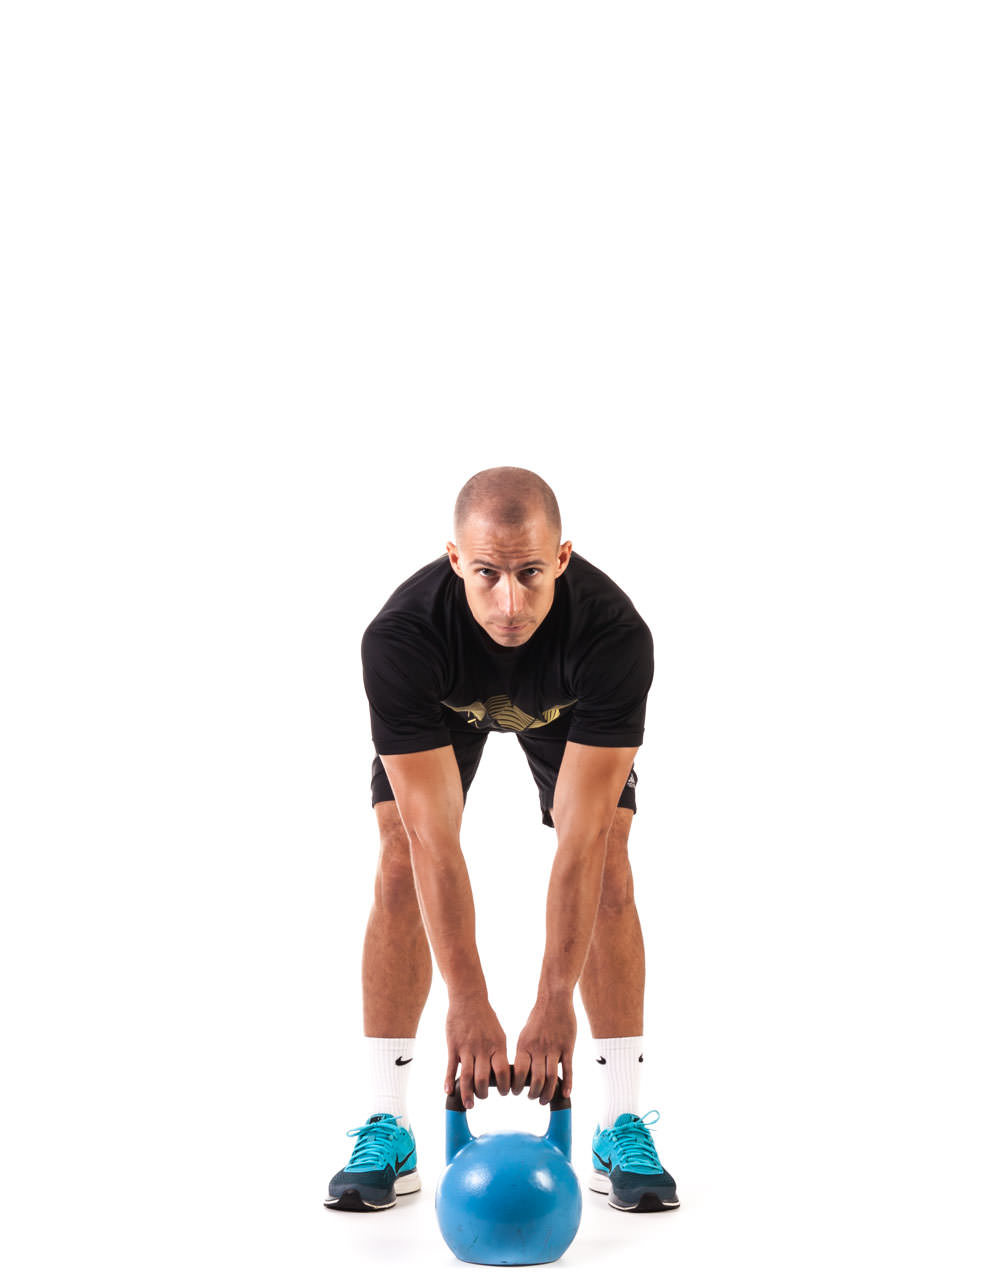 Two-Arm Kettlebell Swing frame #1